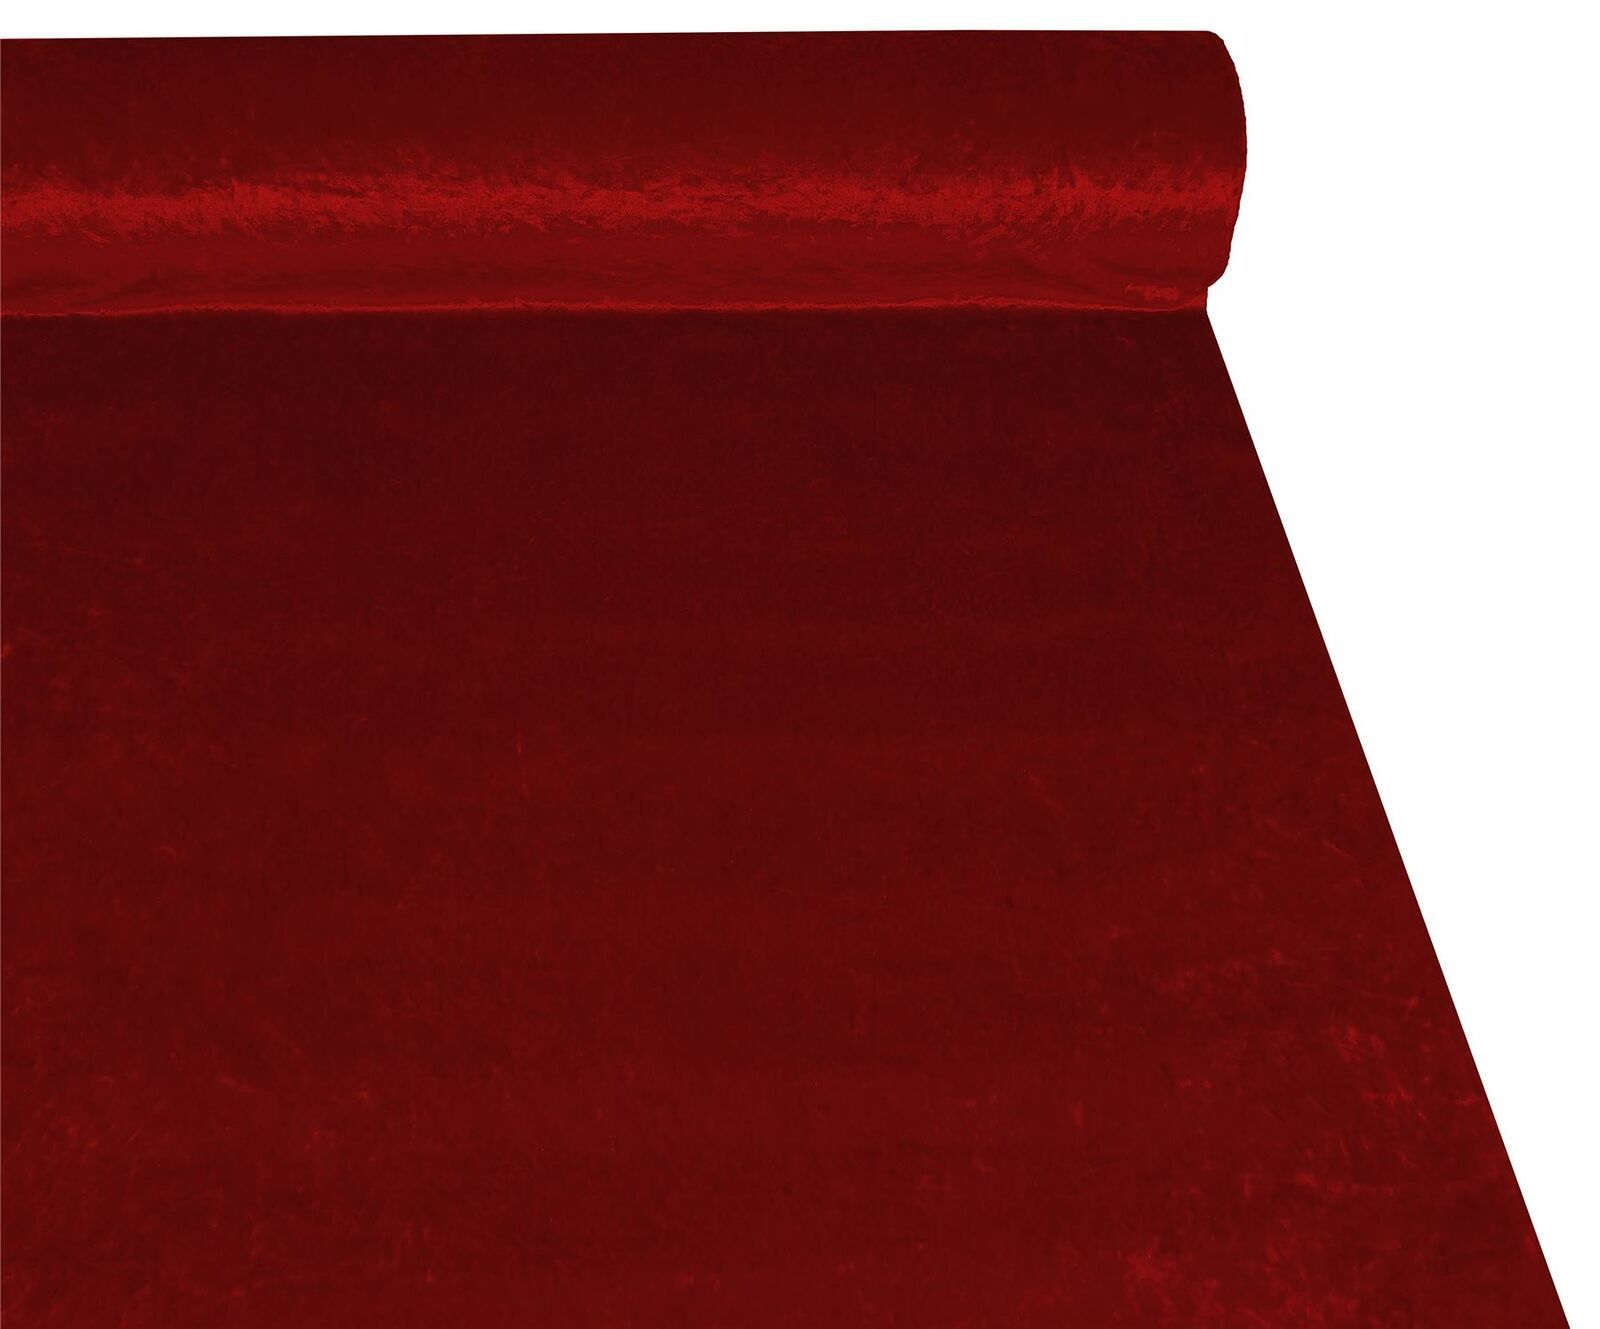 Ruby Red Crushed Velvet High Quality Fabric Material 3 Sizes